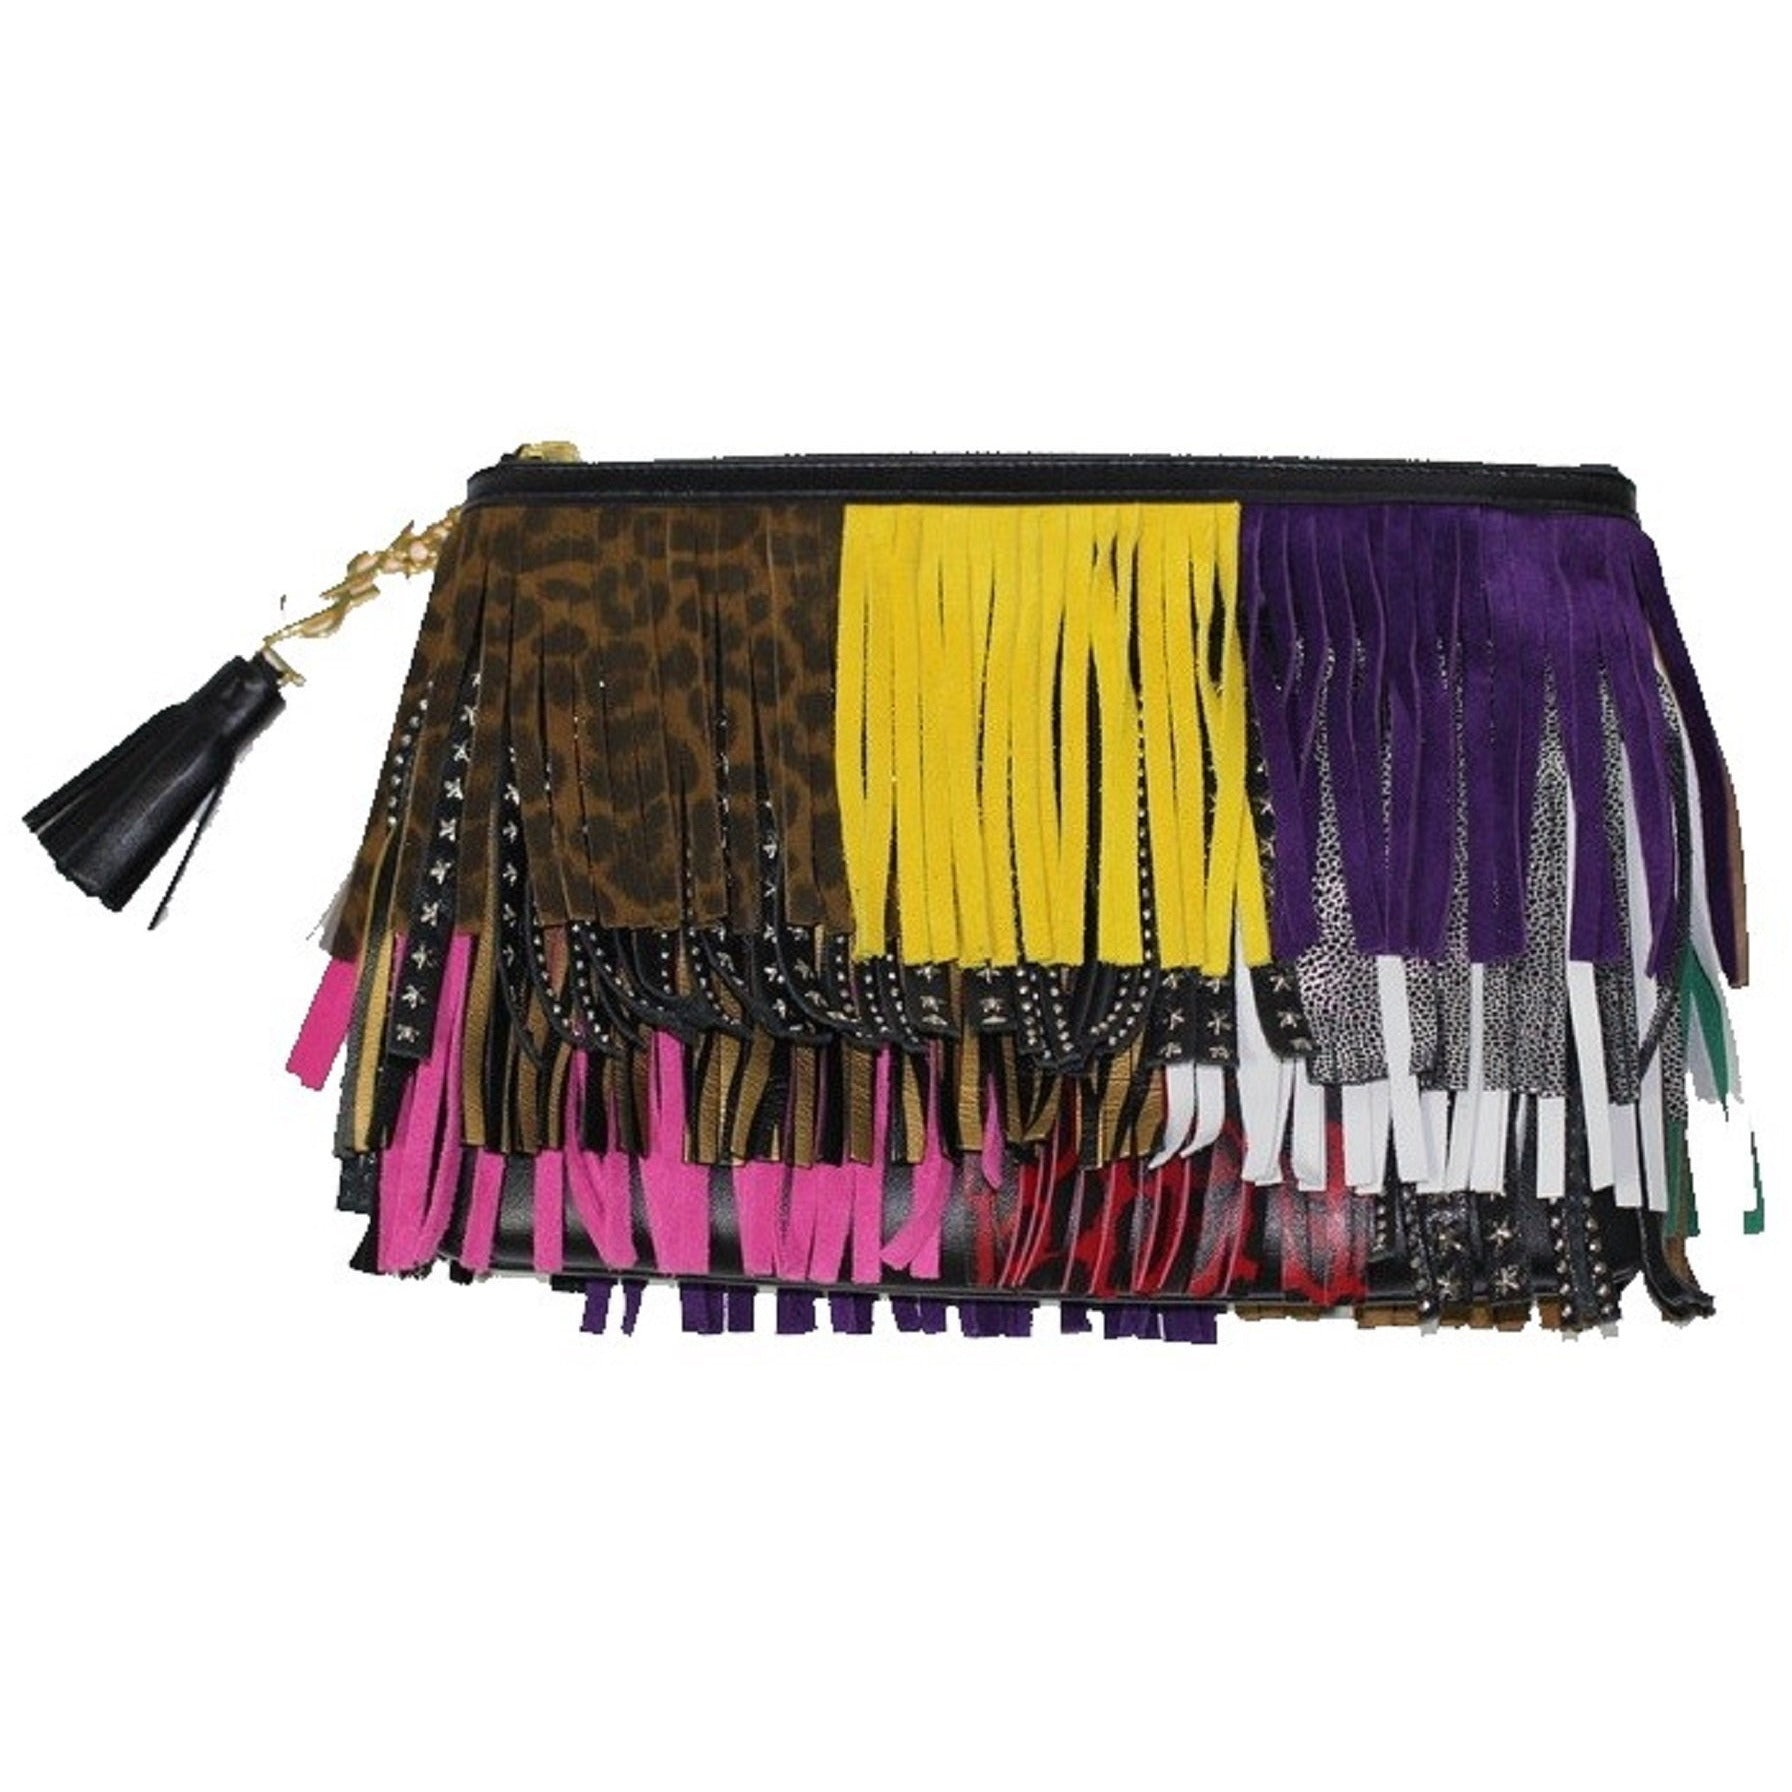 YSL Saint Laurent Pouch New Joulie Multicolor Fringes 403418 CWU21